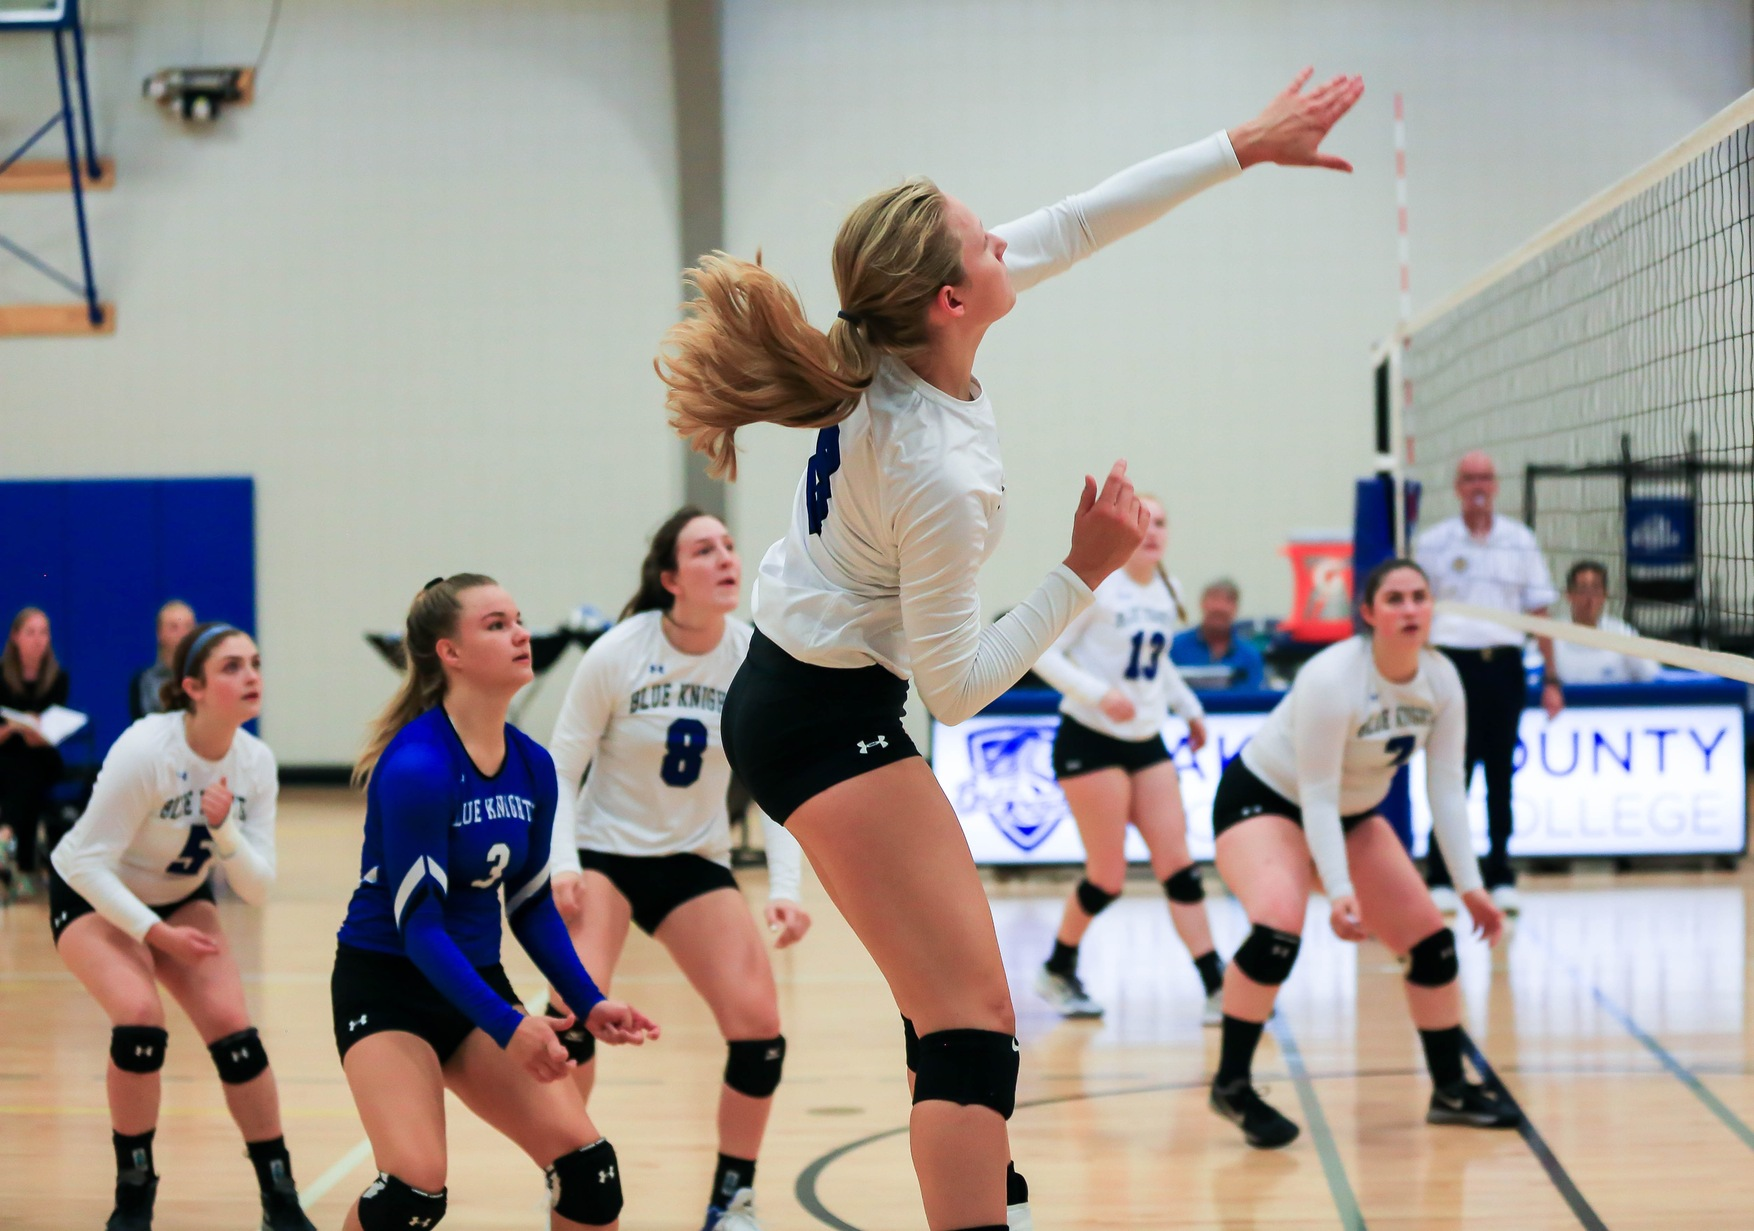 Blue Knights Volleyball Pick up 4 Wins this Weekend and Have 9 Match Win Streak